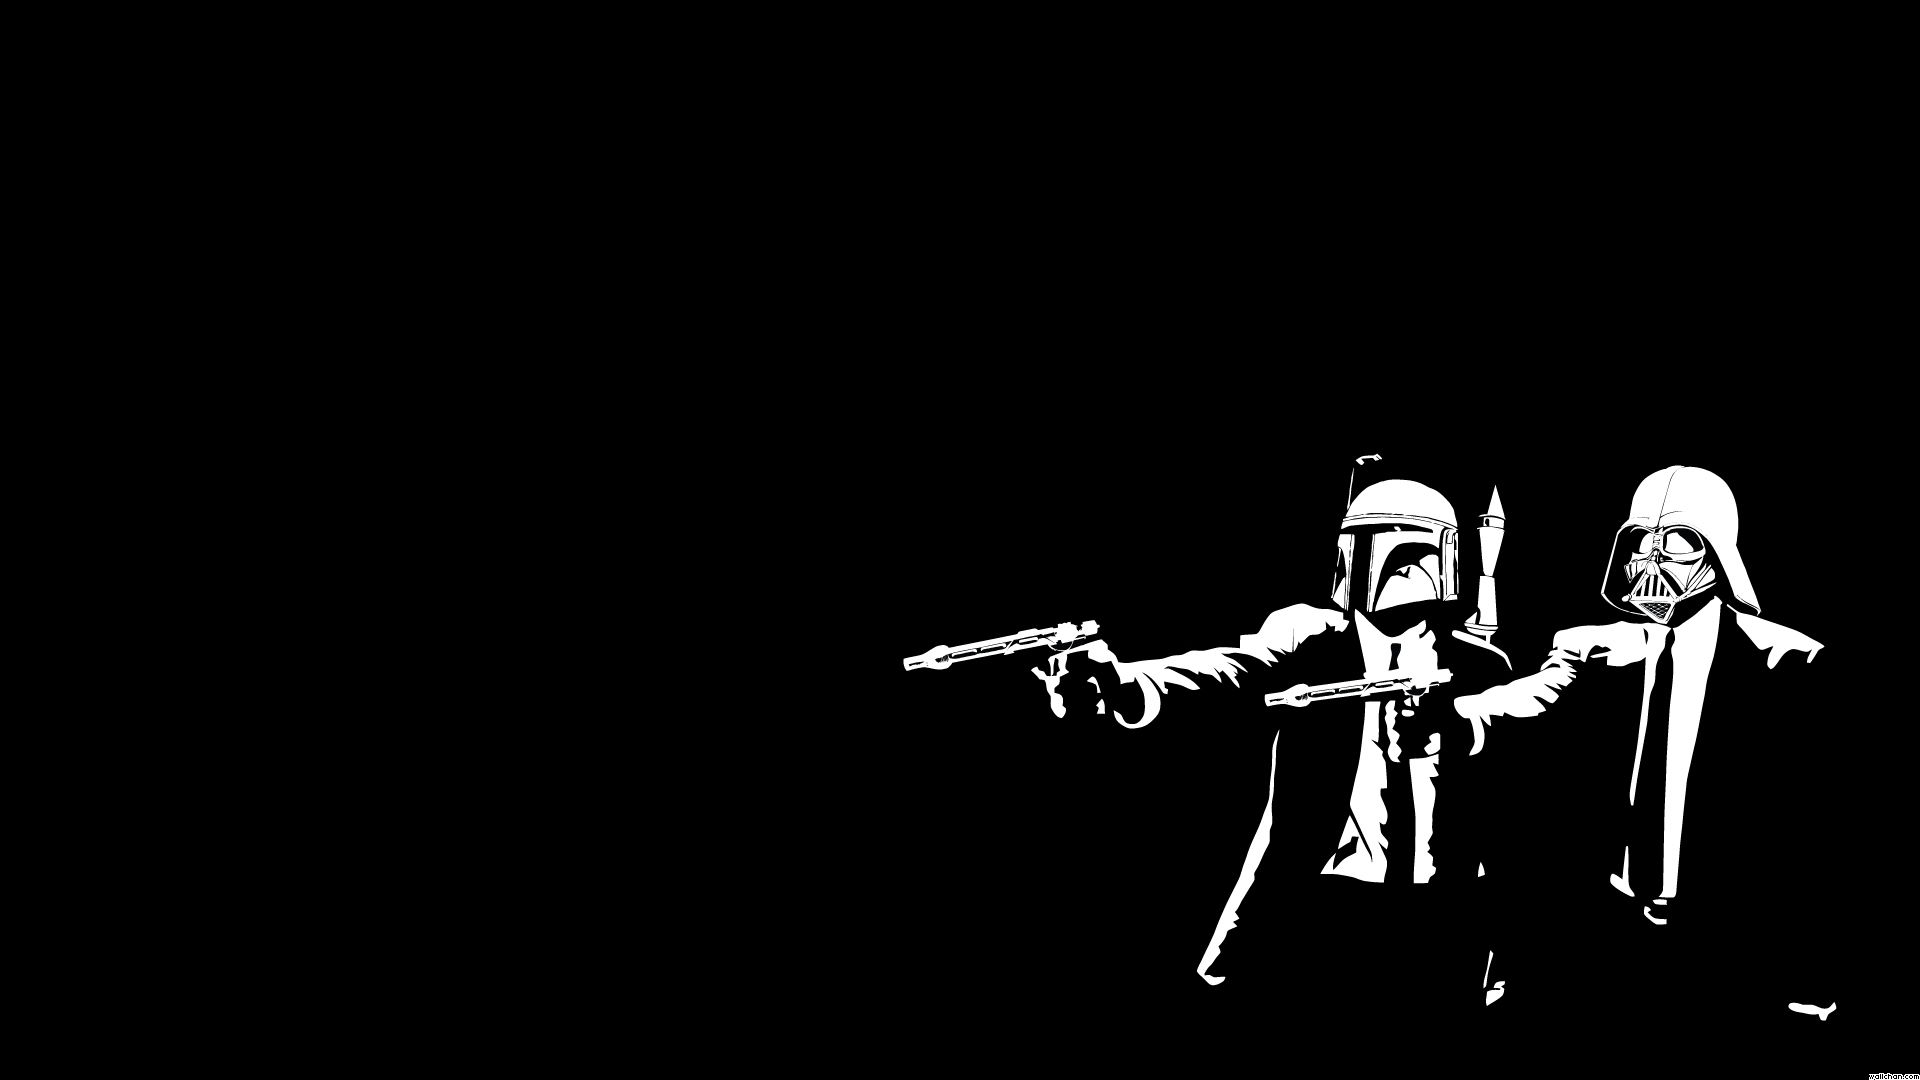 Cool Star Wars wallpaper | 1920x1080